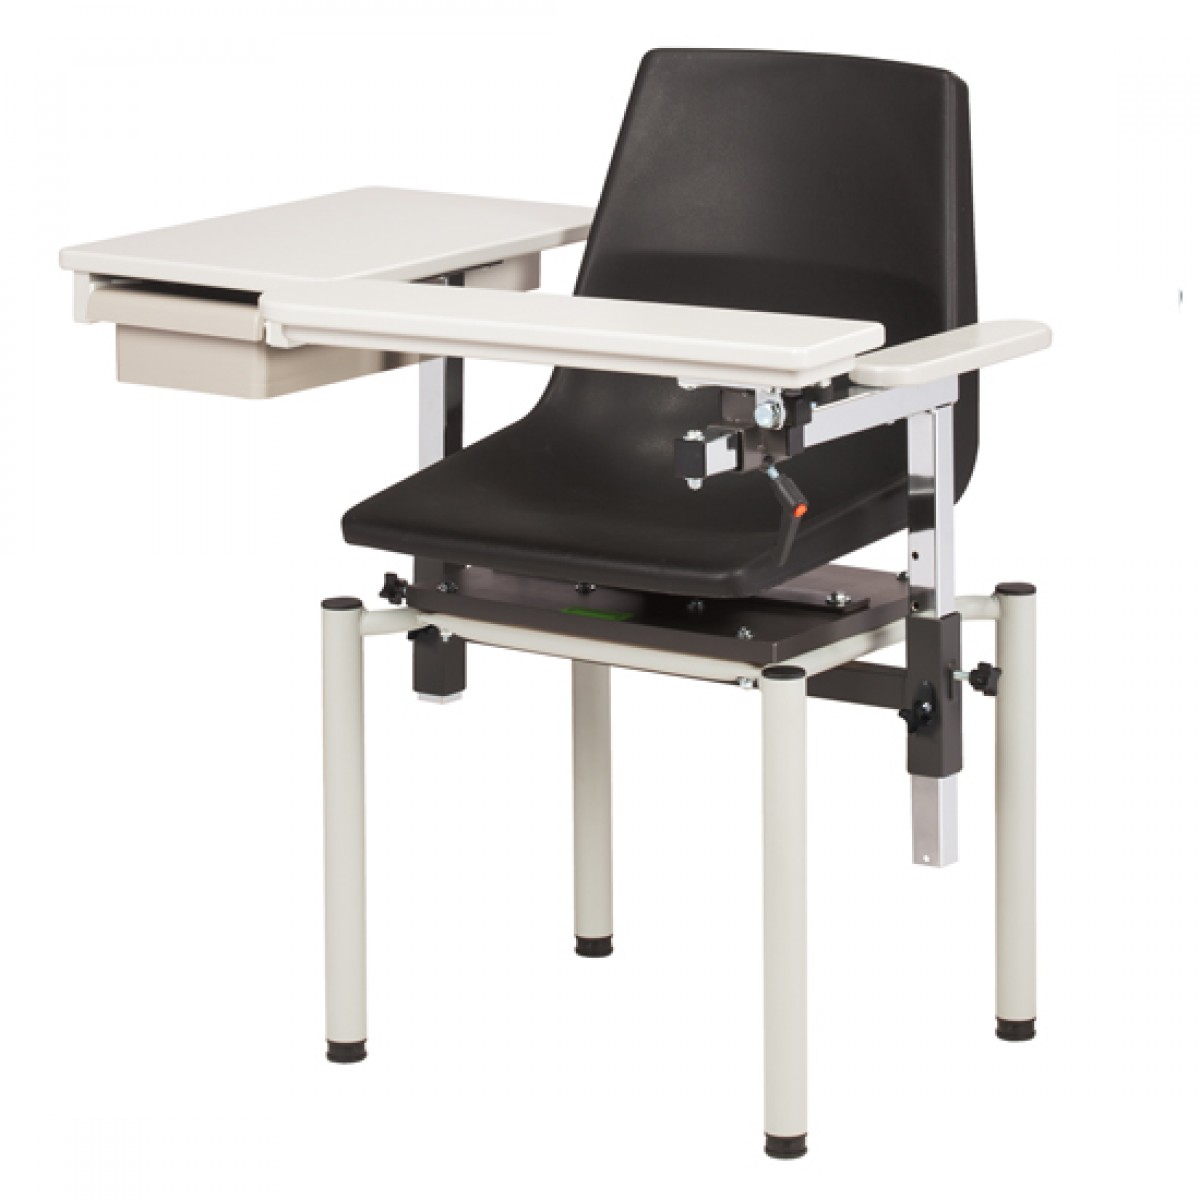 blood draw chair drive medical bathroom safety shower tub bench gray hospital phlebotomy chairs clinton drawing more views 6049 p